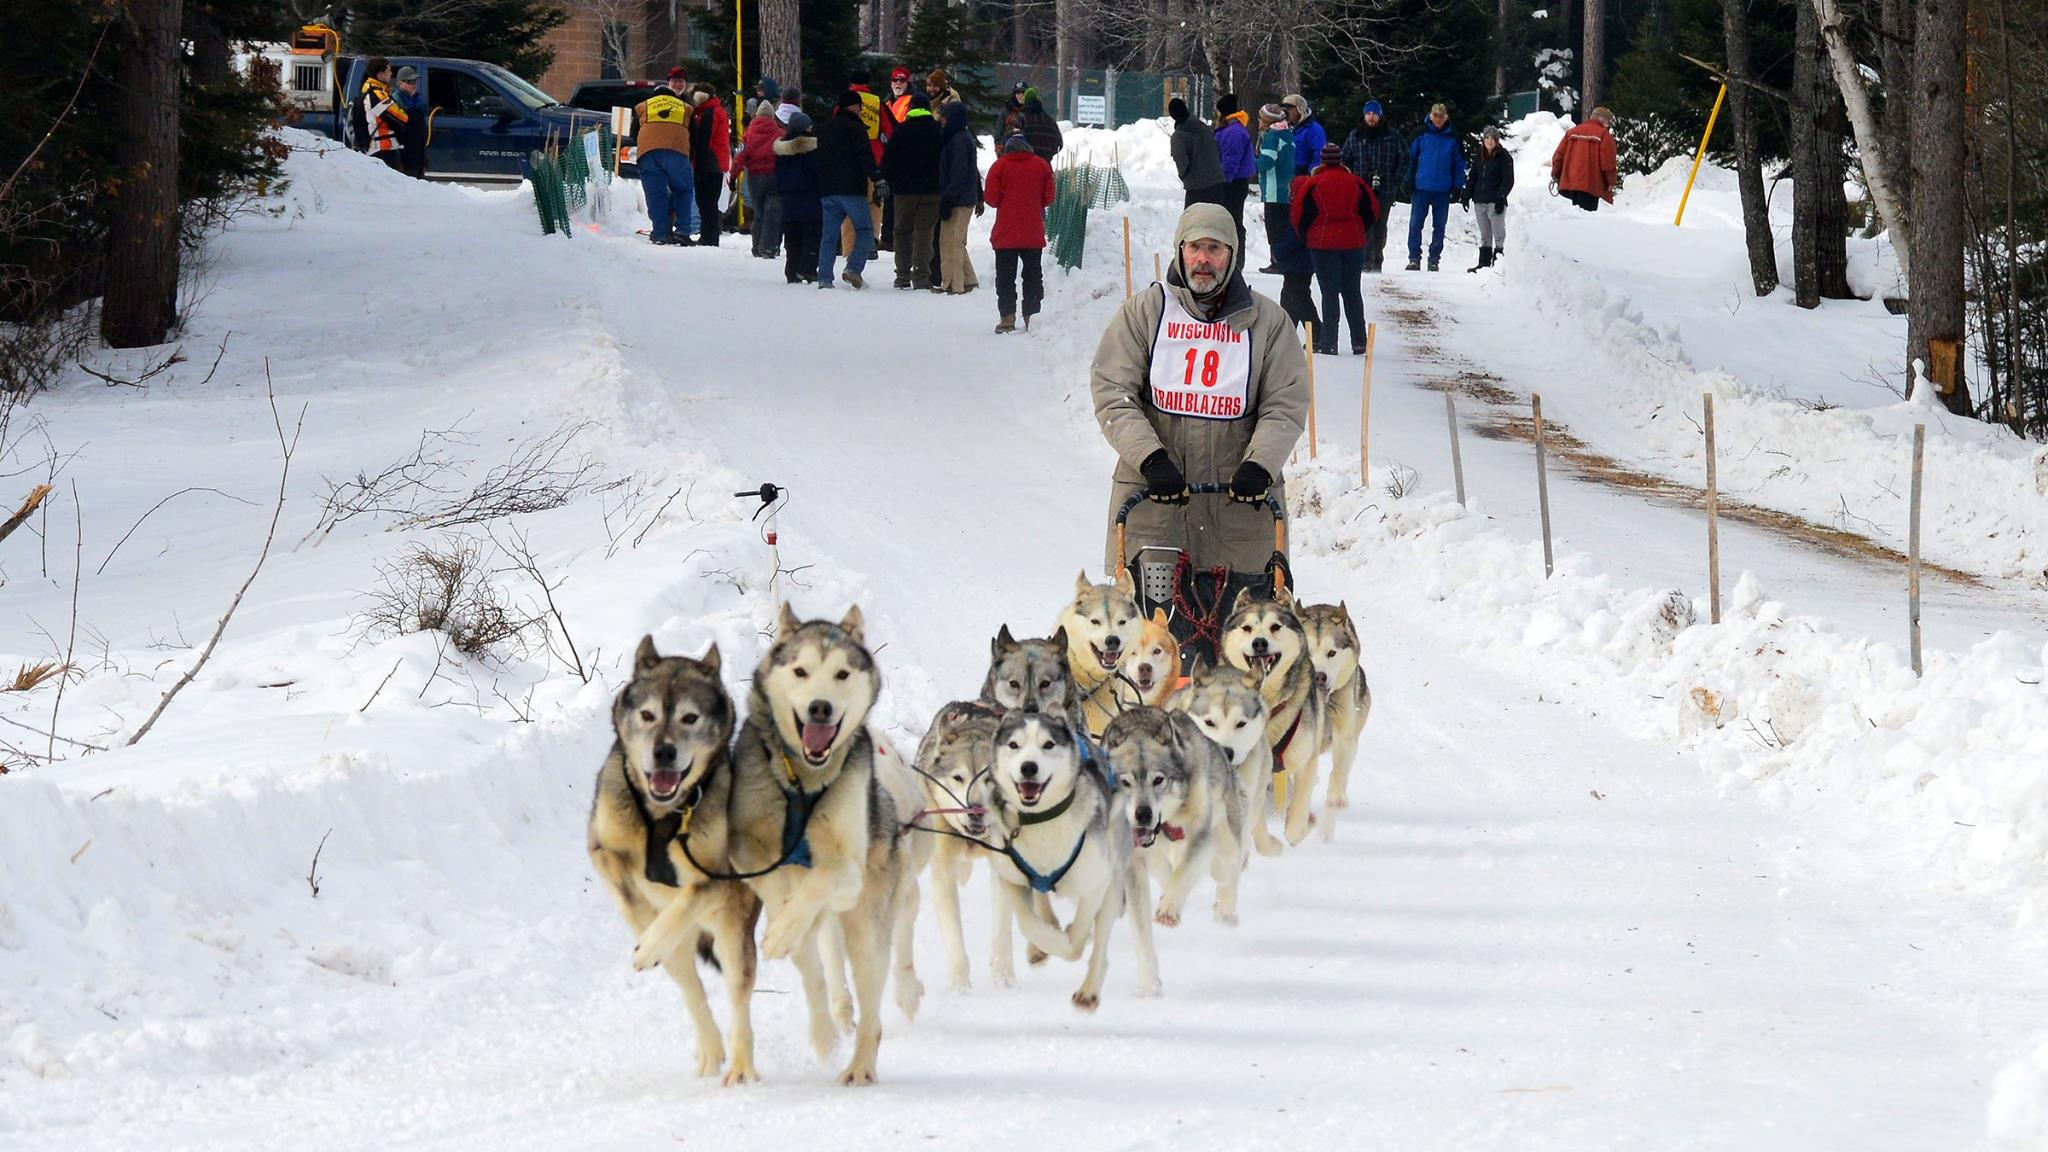 37th Annual Three Bear Sled Dog Races in Land O'Lakes